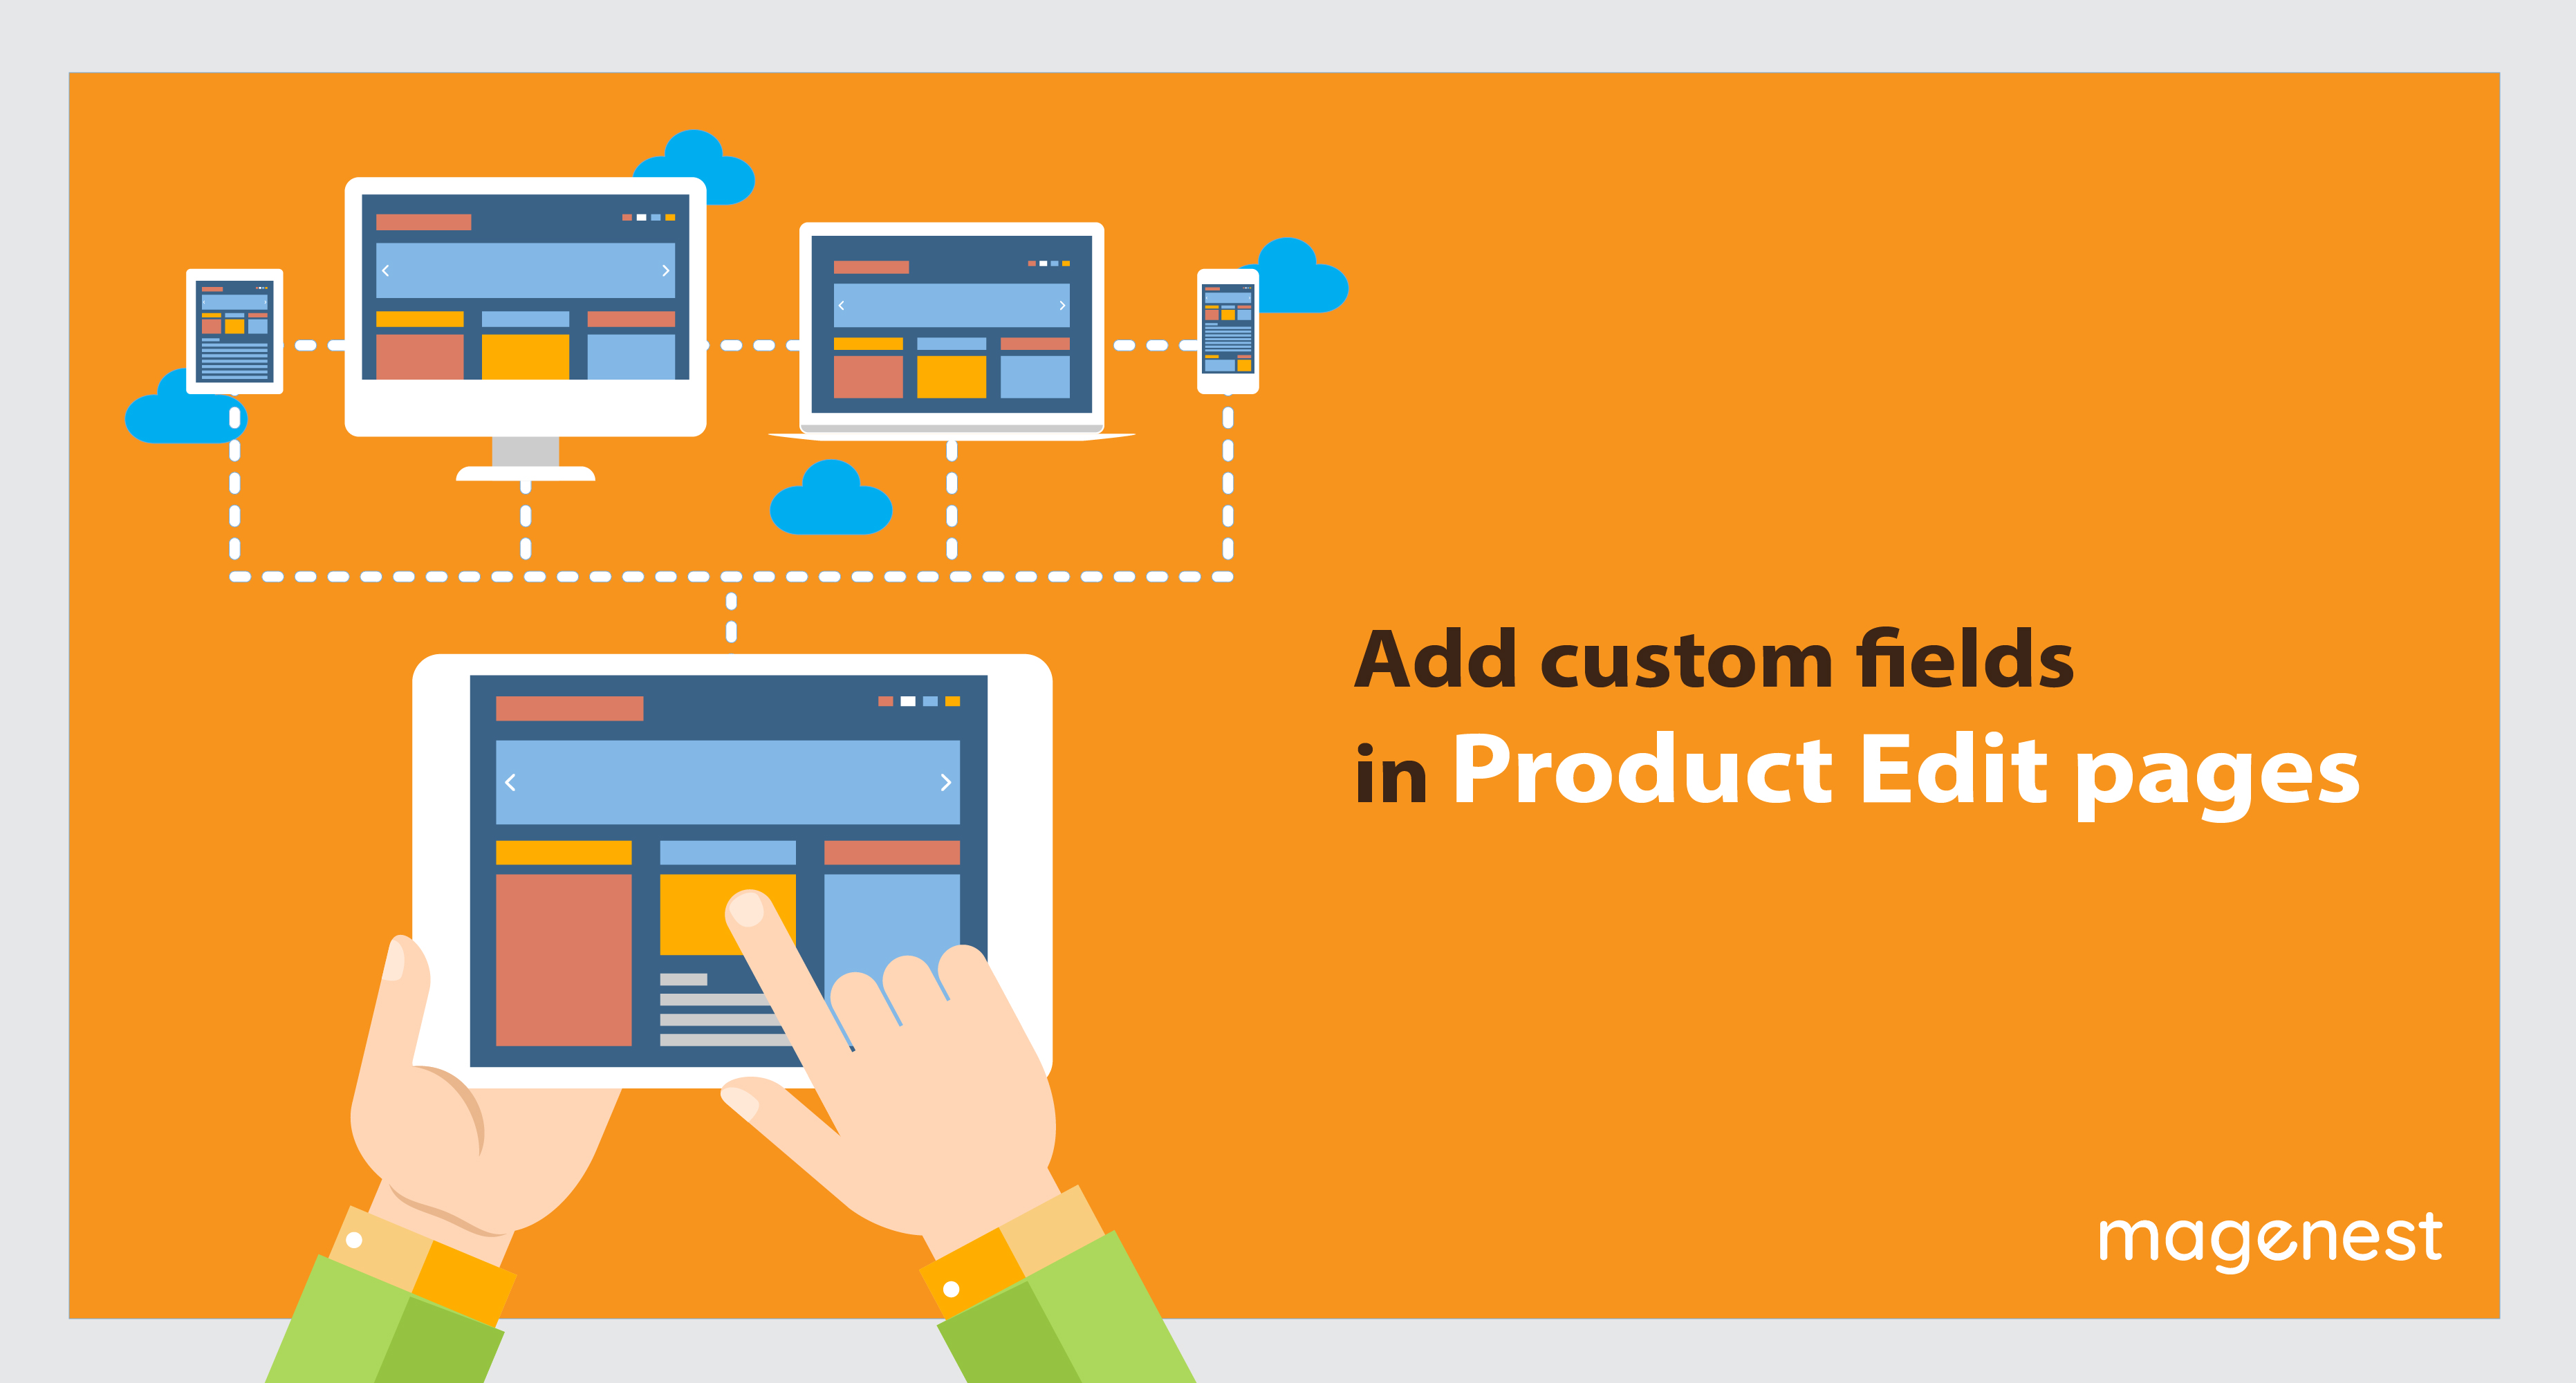 How to add custom fields in Product Edit pages in Magento 2